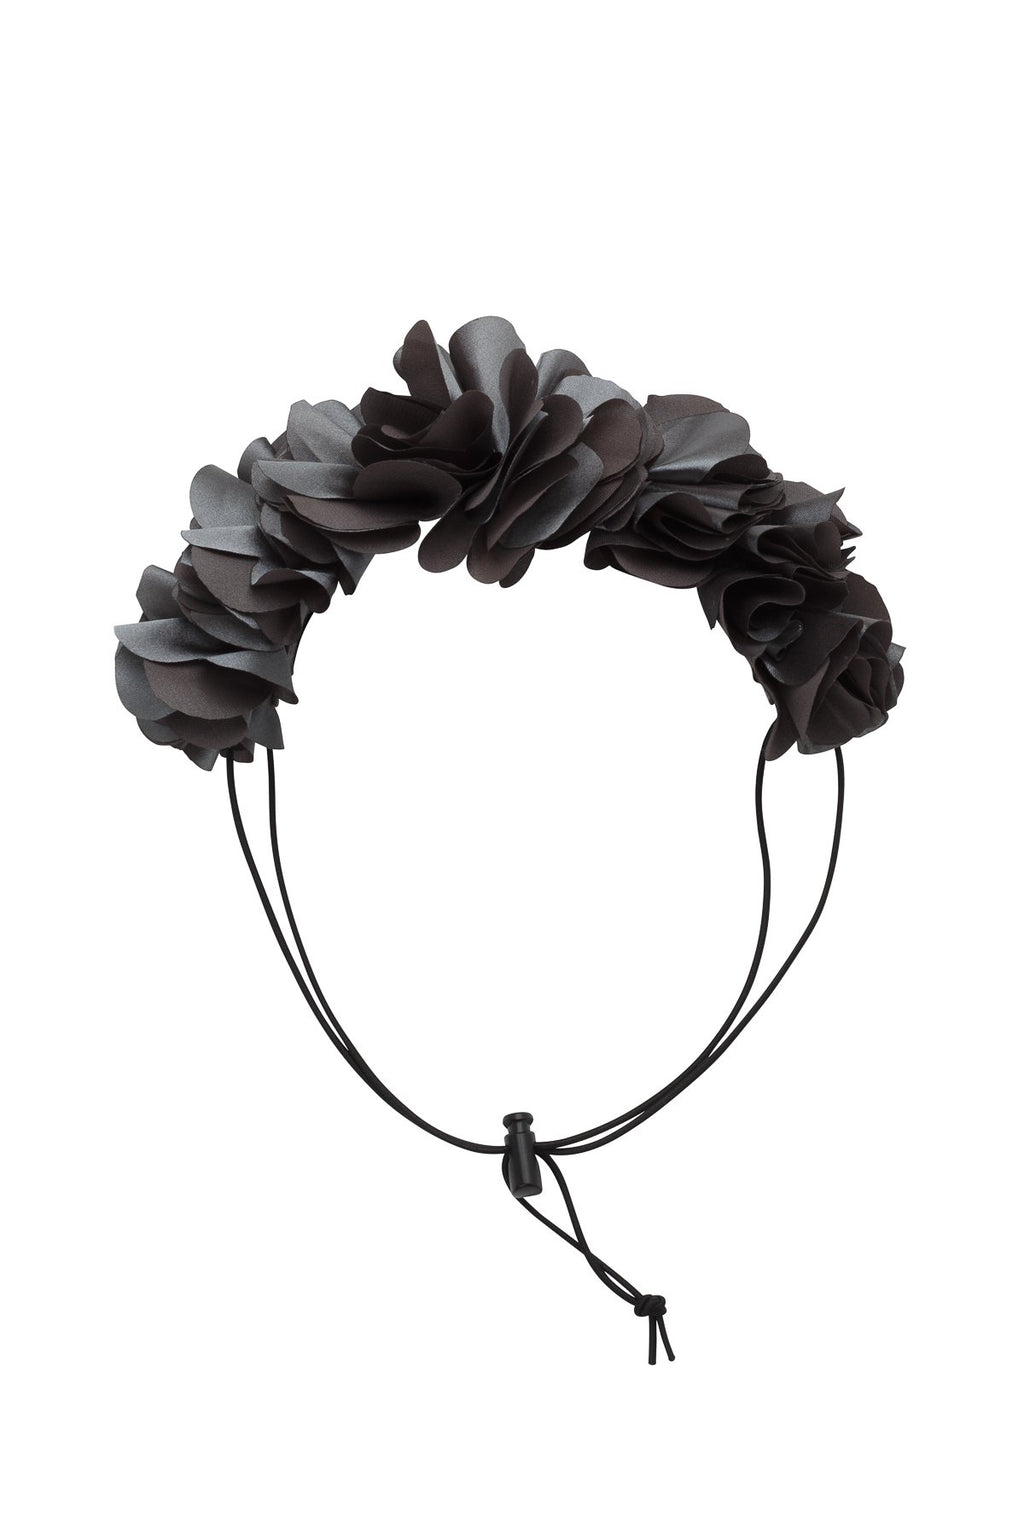 Floral Wreath Petit - Charcoal - PROJECT 6, modest fashion